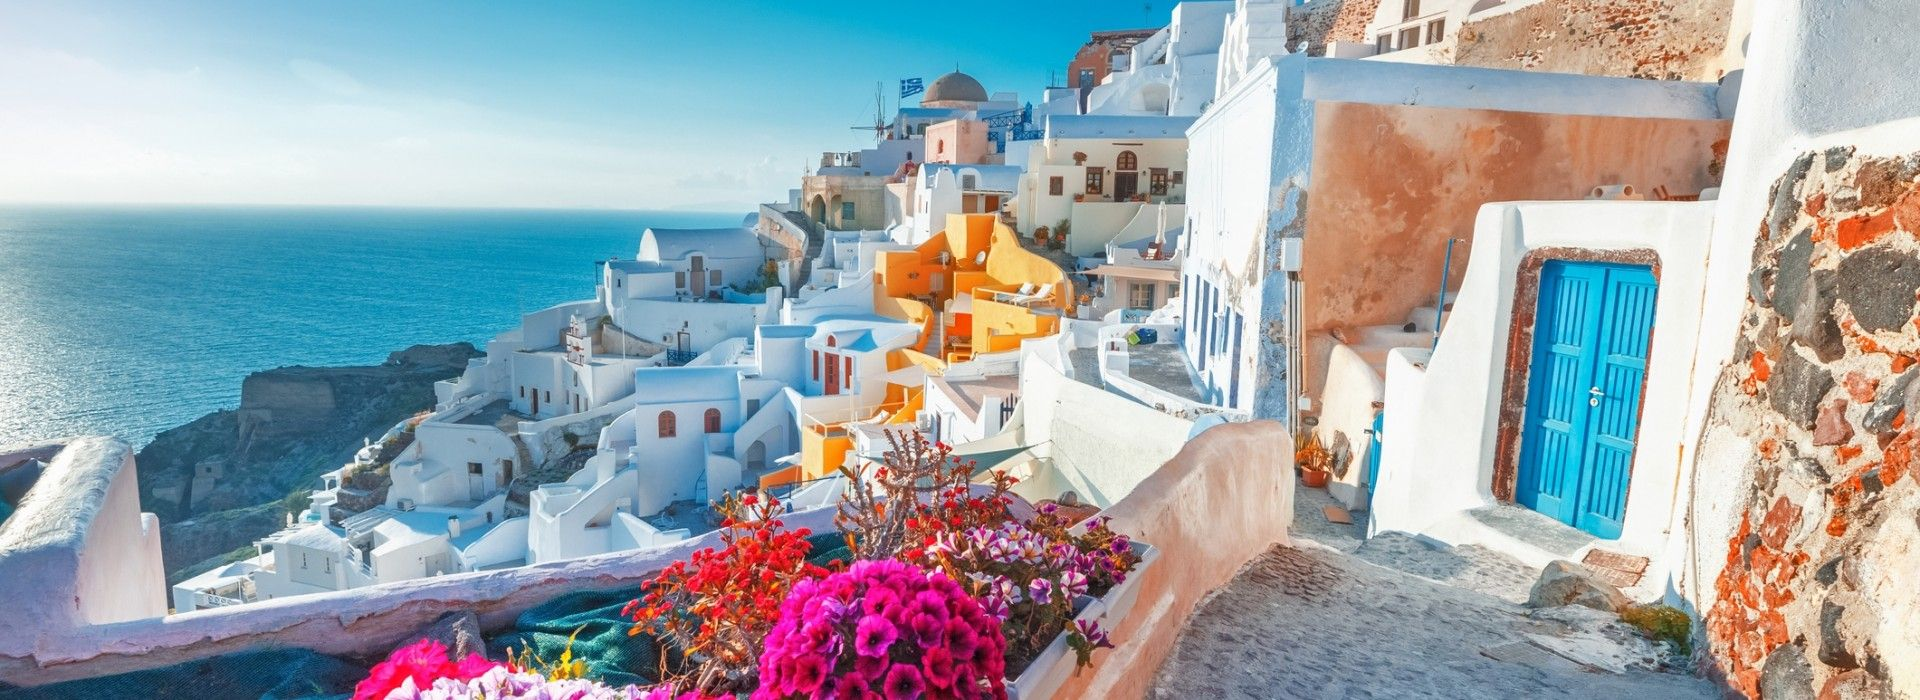 Special interests and hobbies Tours in Mediterranean